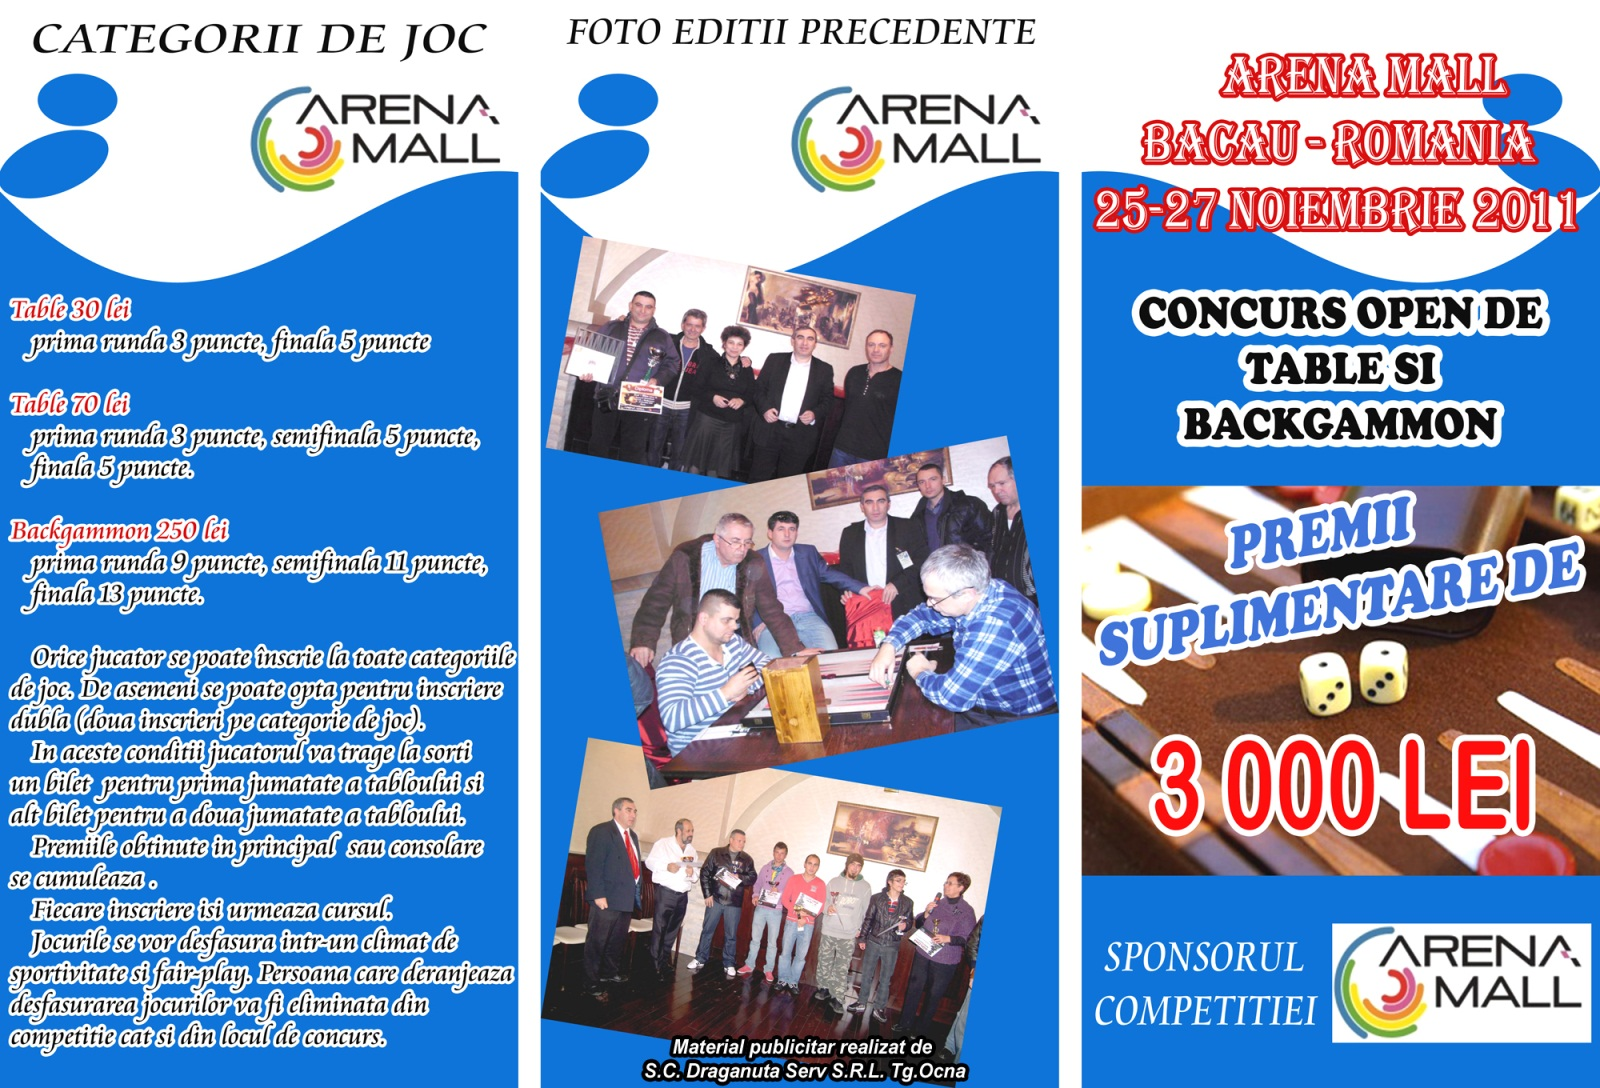 CONCURS OPEN DE TABLE SI BACKGAMMON Bacau